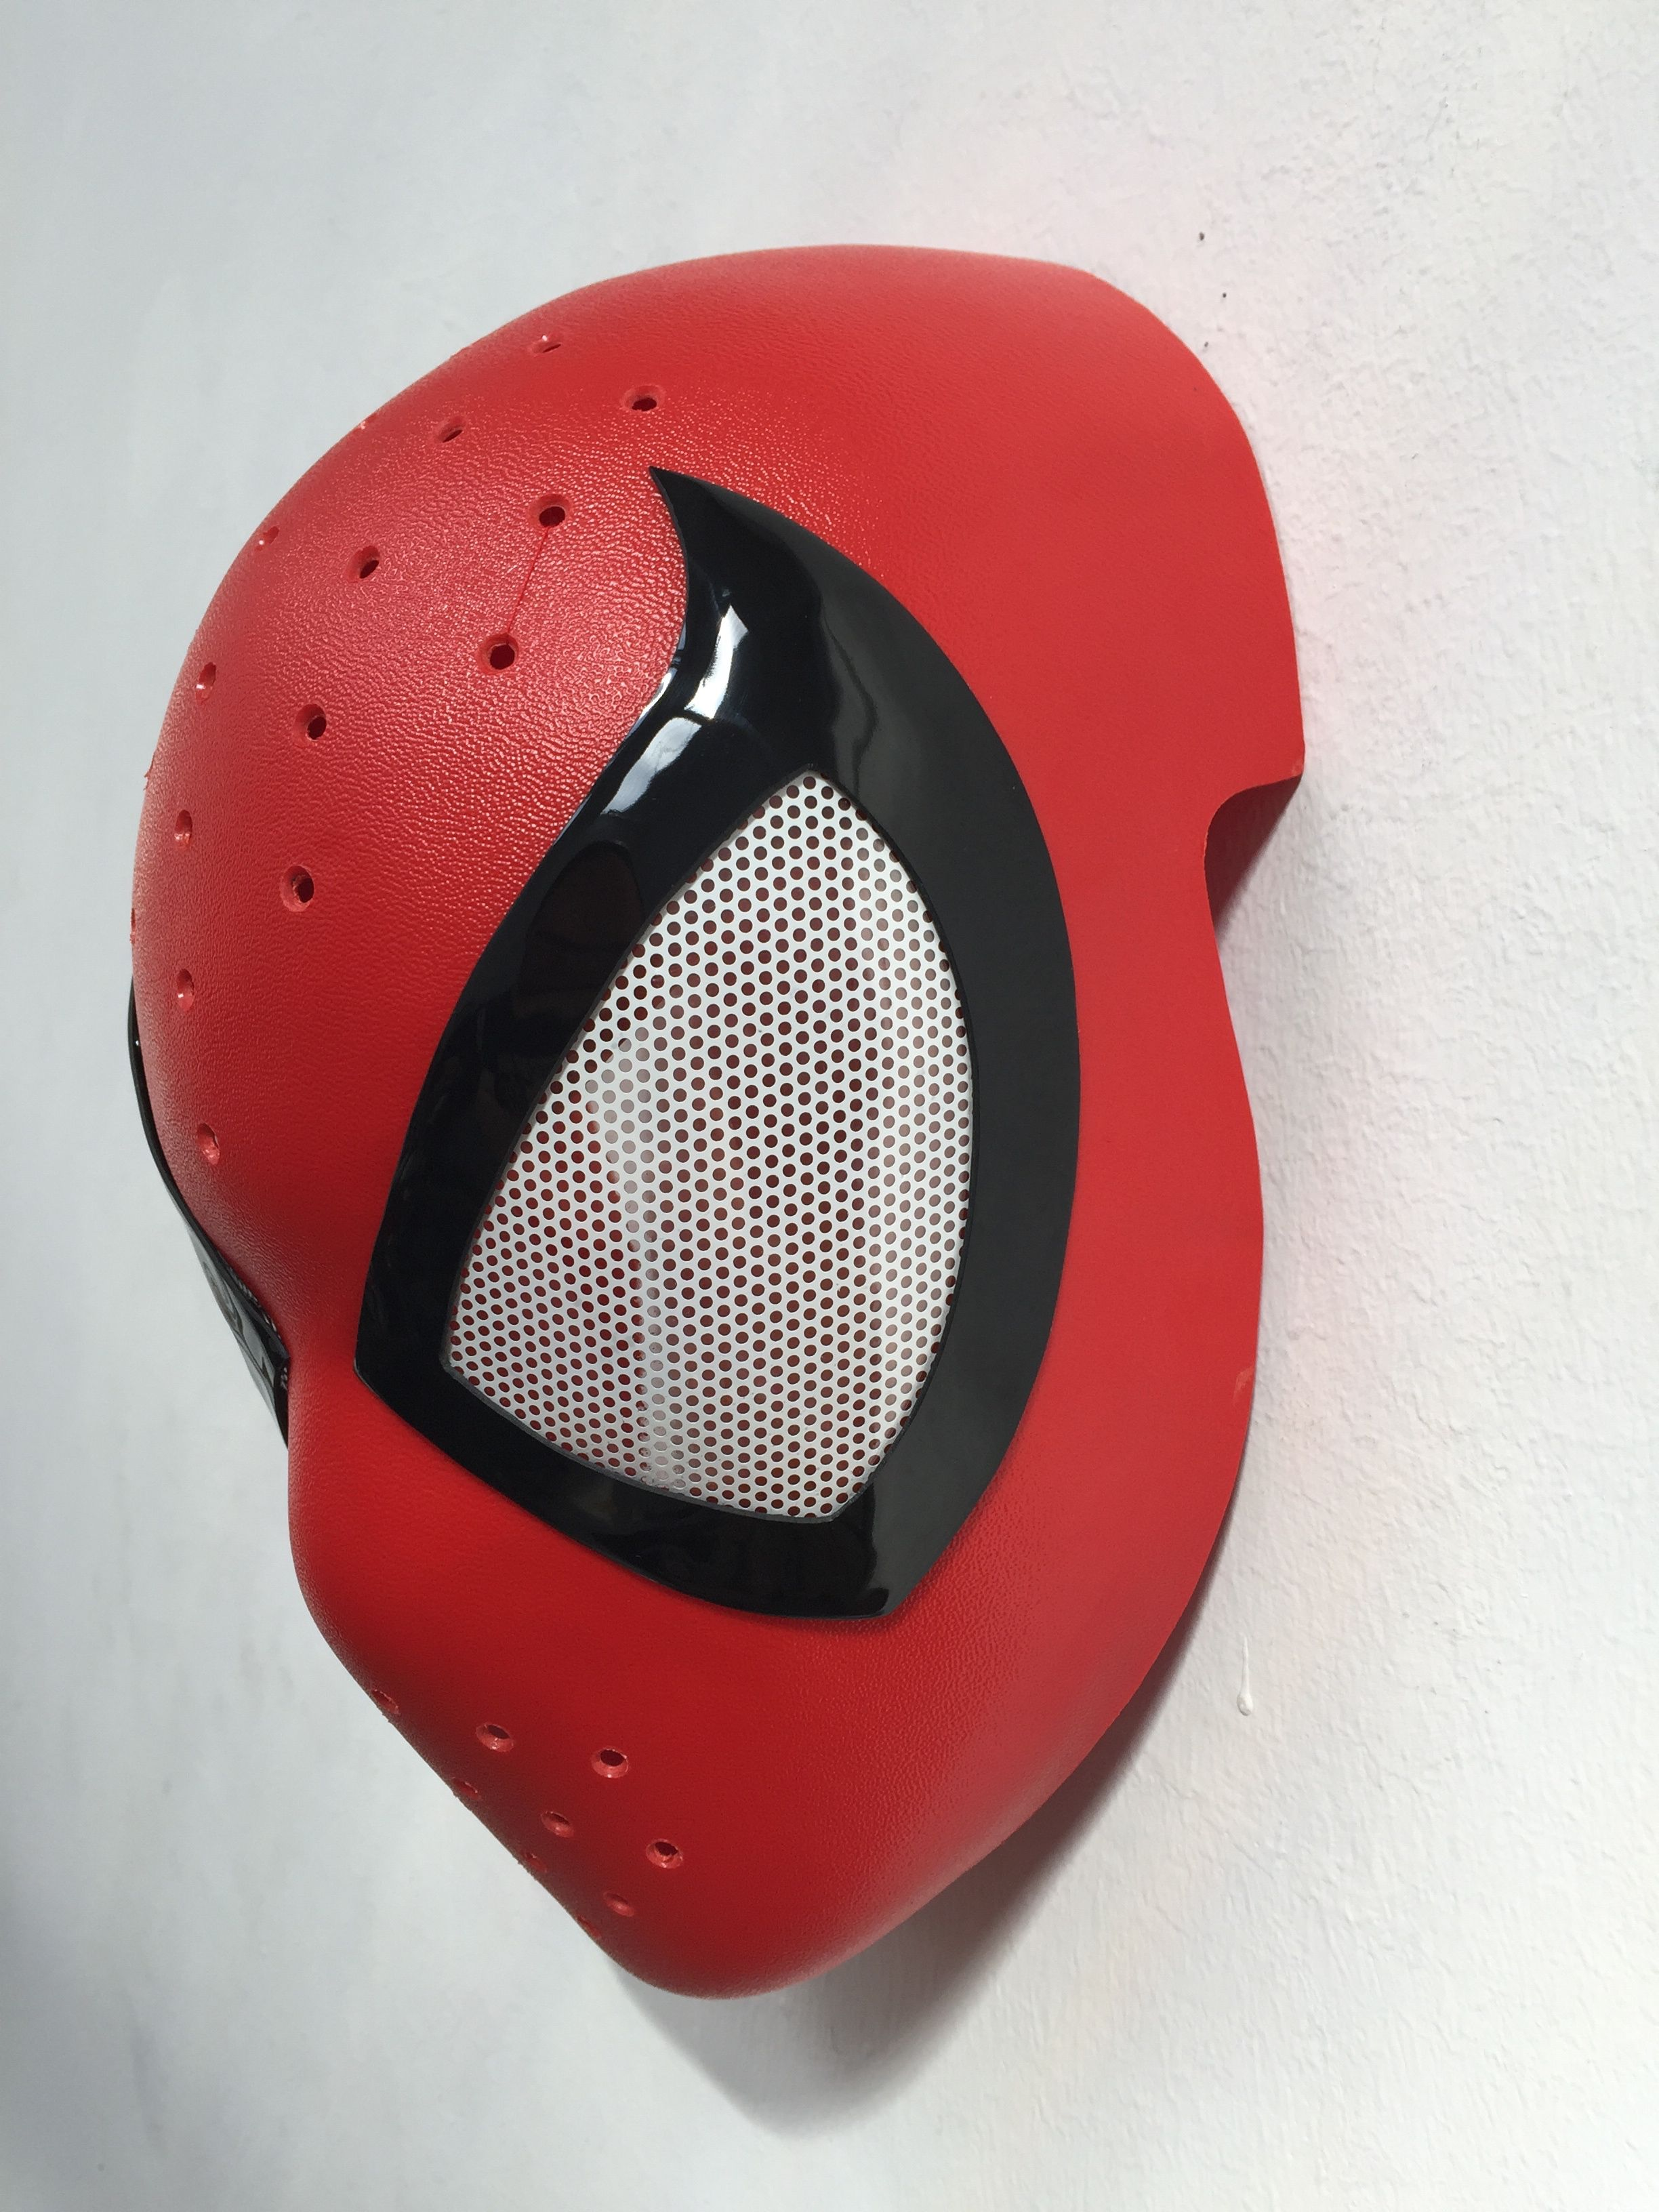 Spiderman Mask Shell : spiderman, shell, Welcome, Spiderman, Cosplay,, Mask,